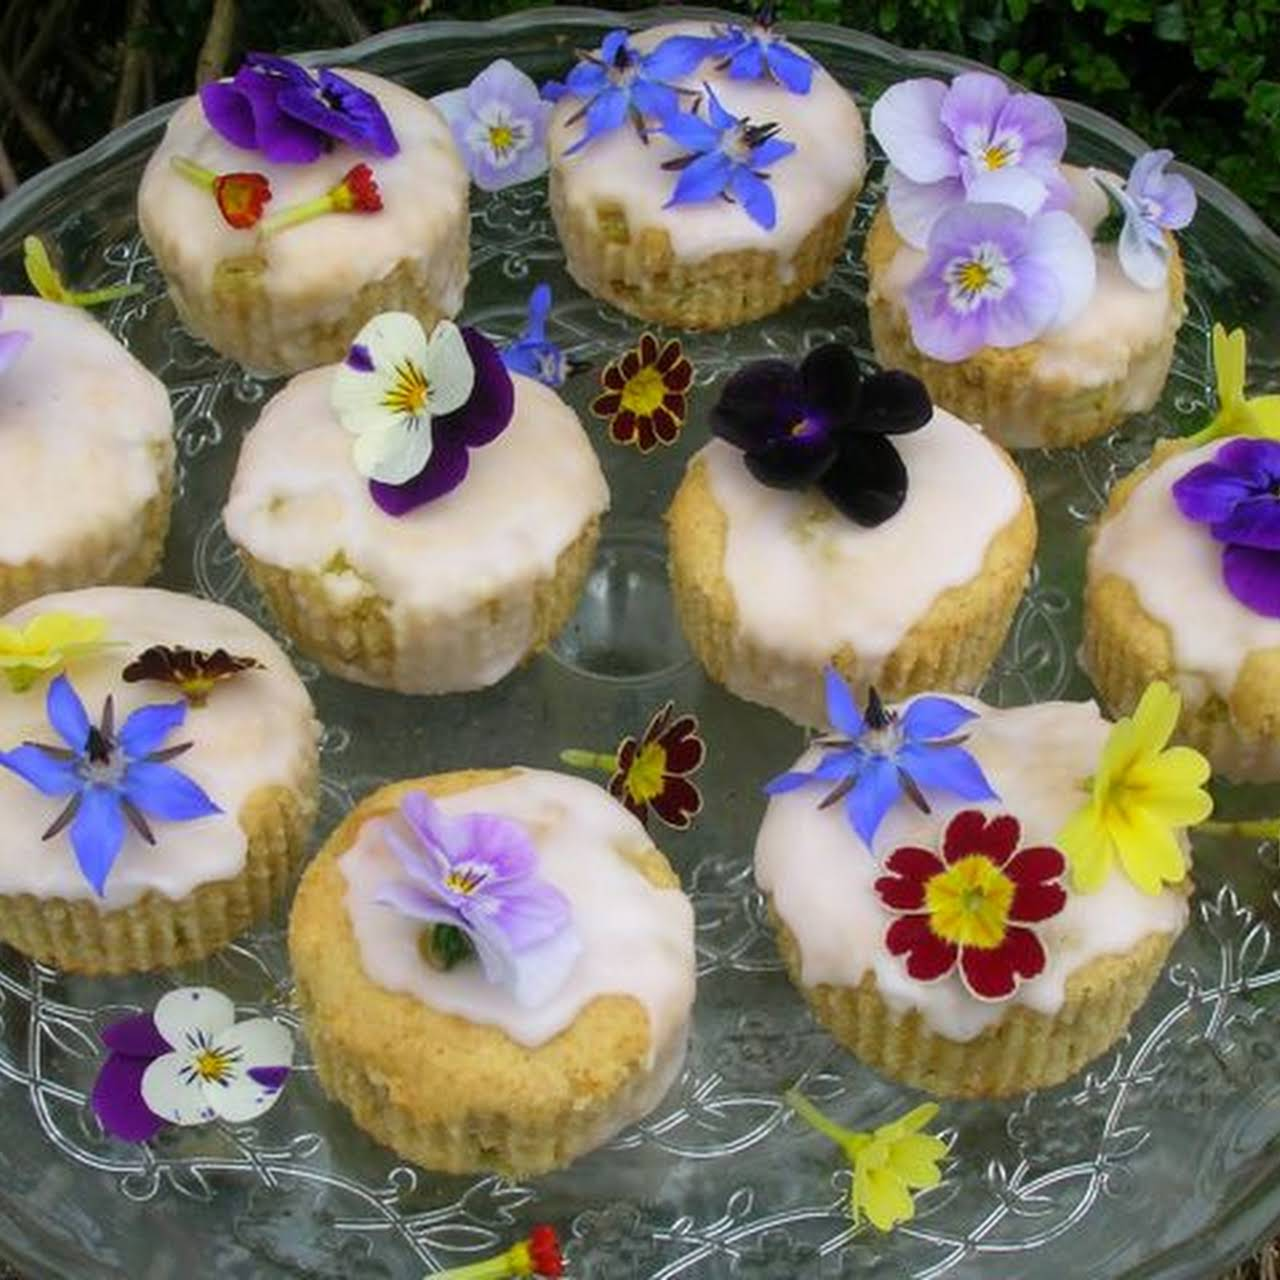 Rhubarb Fairy Cakes and Edible Flowers